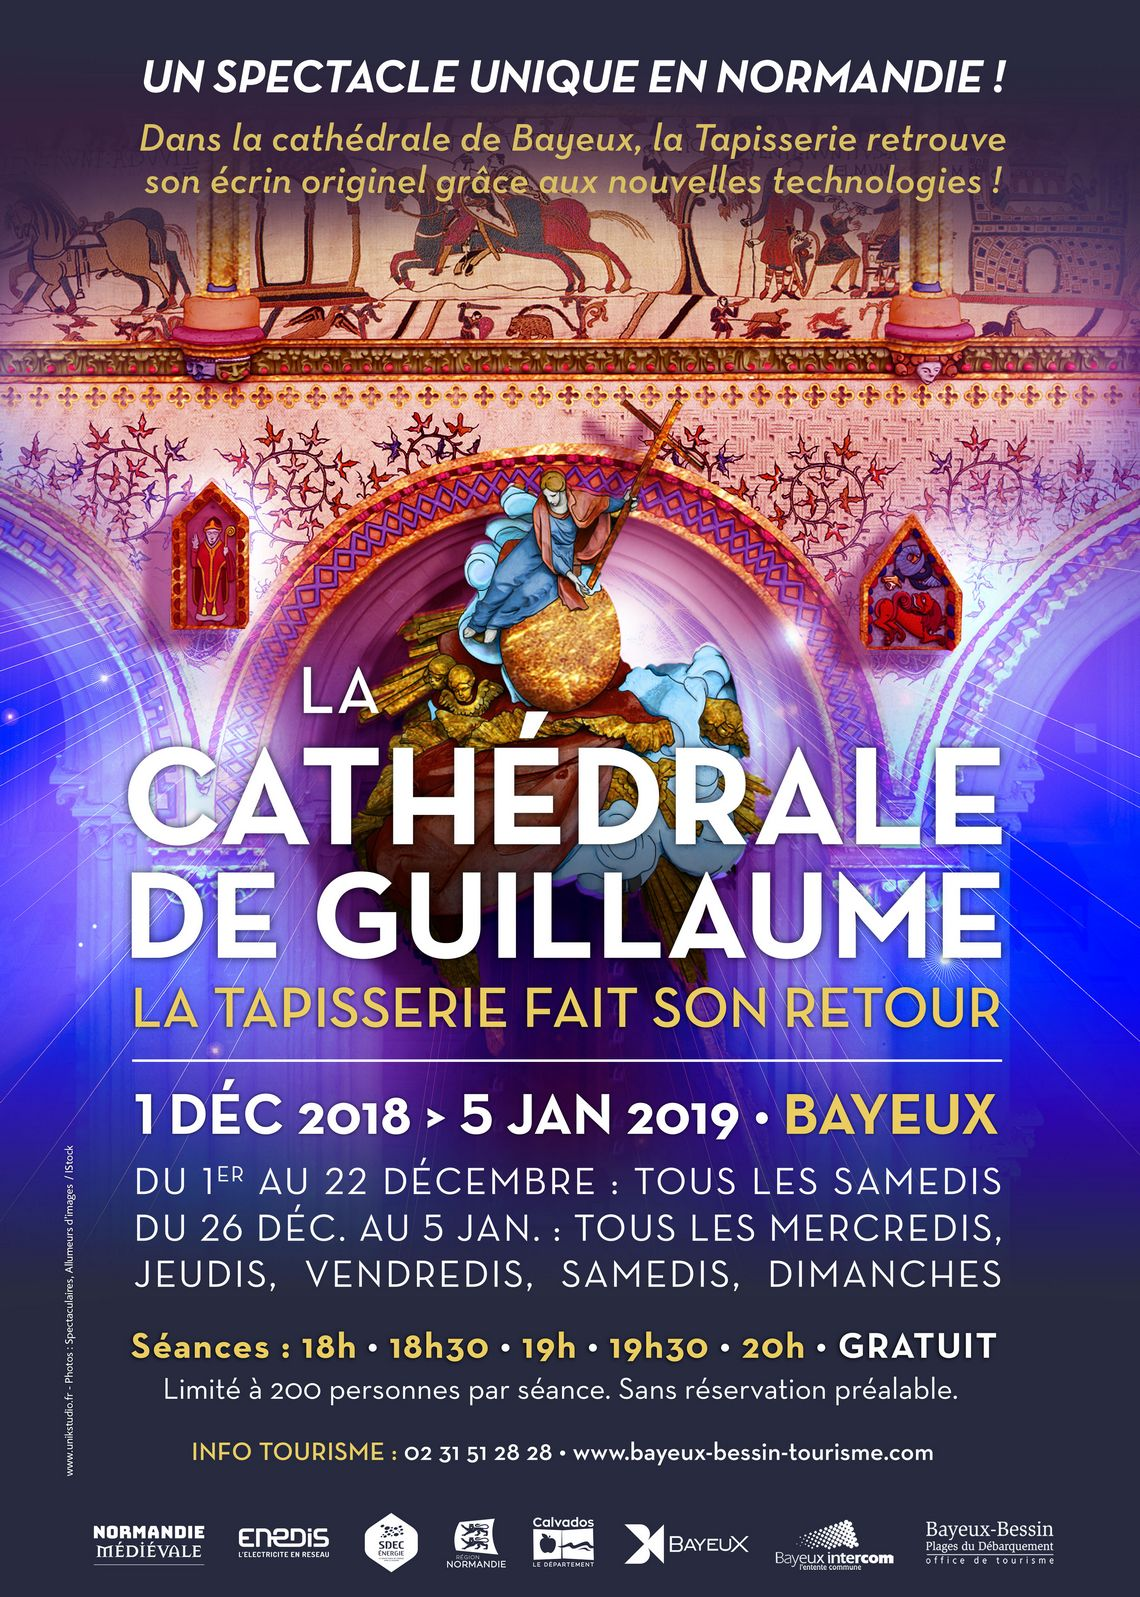 cathedrale-guillaume-bayeux-tapisserie-spectacle-unique-2018-